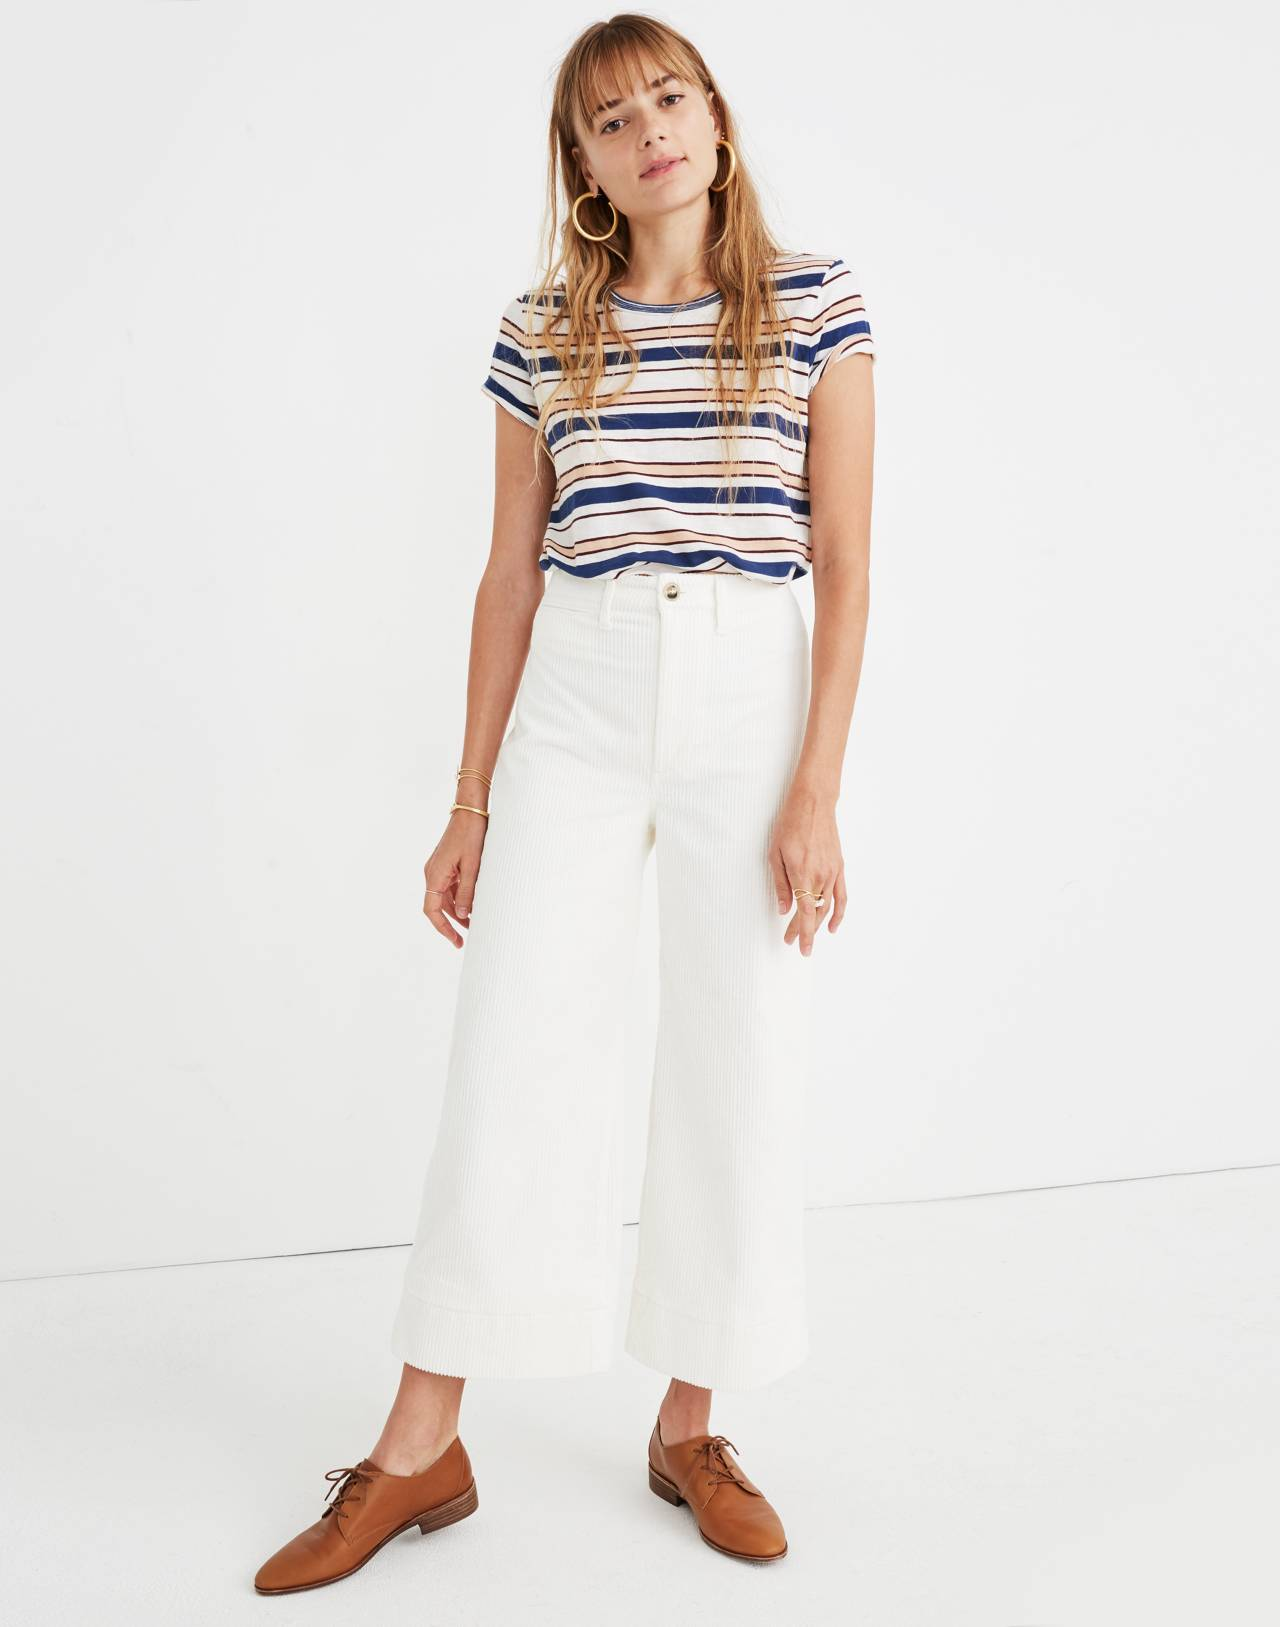 Emmett Wide-Leg Crop Pants in Corduroy in bright ivory image 2